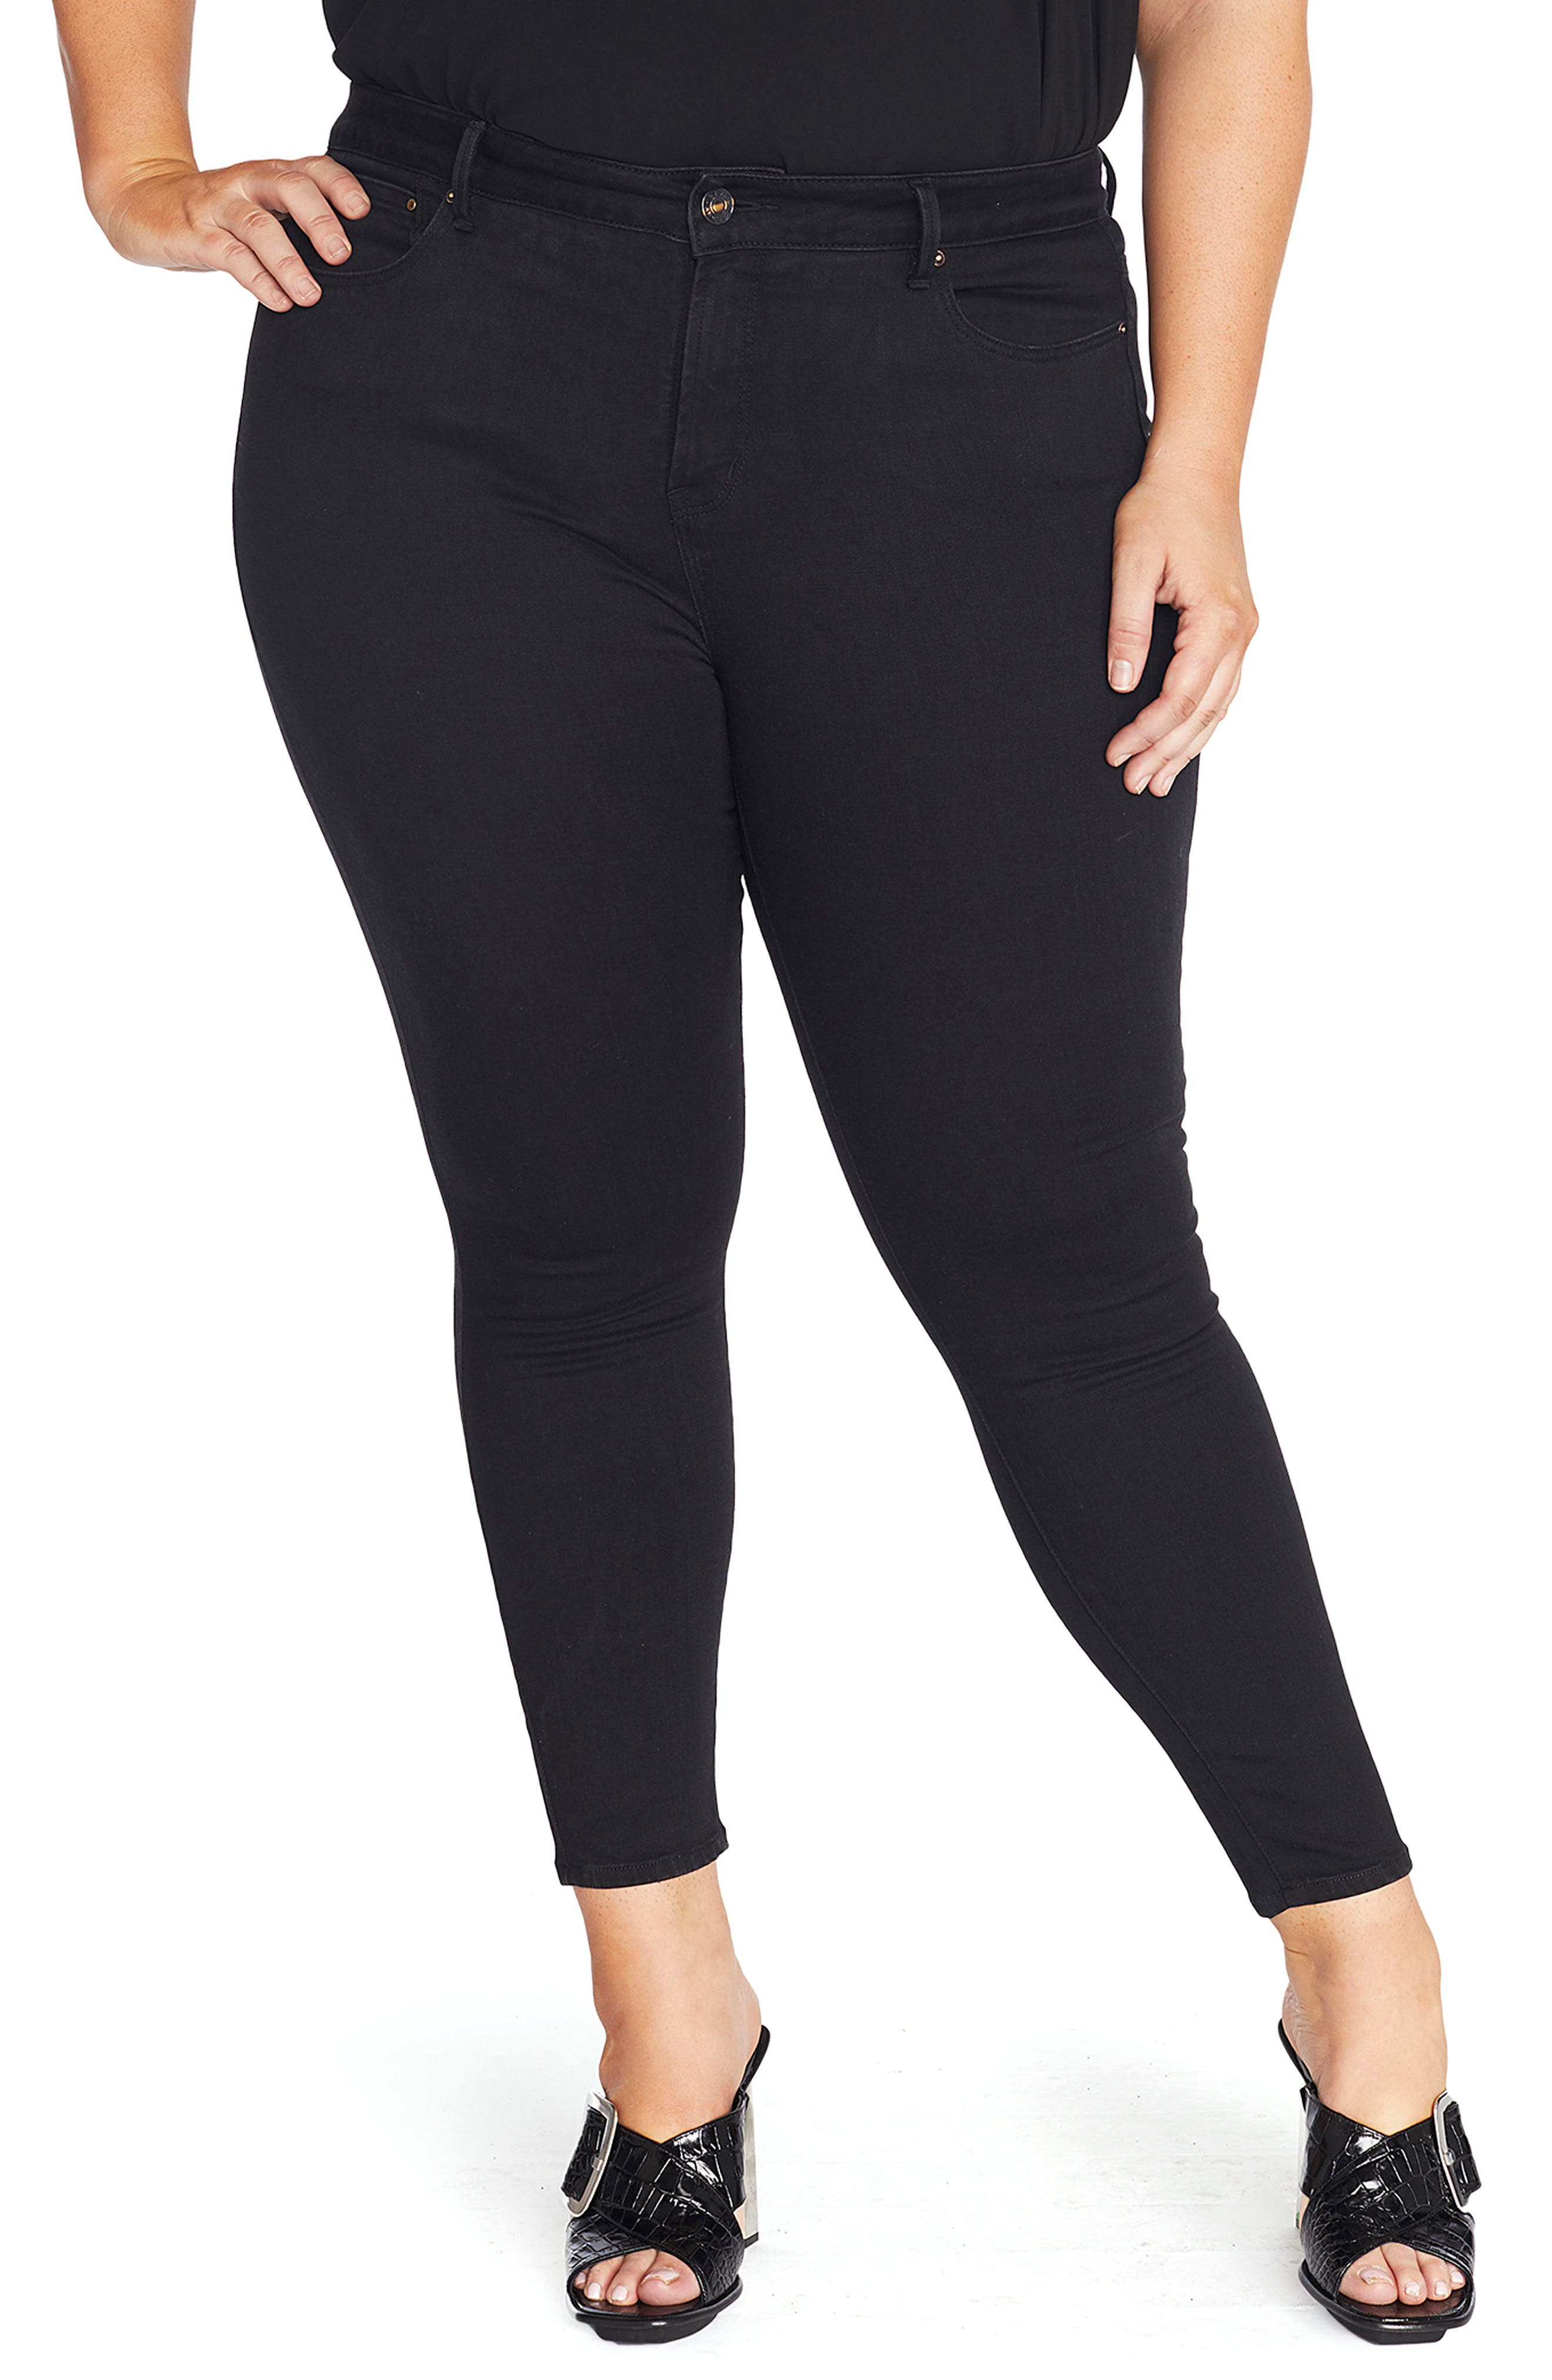 Alternate Image 1 Selected - REBEL WILSON X ANGELS The Pin Up Super Skinny Jeans (Plus Size)